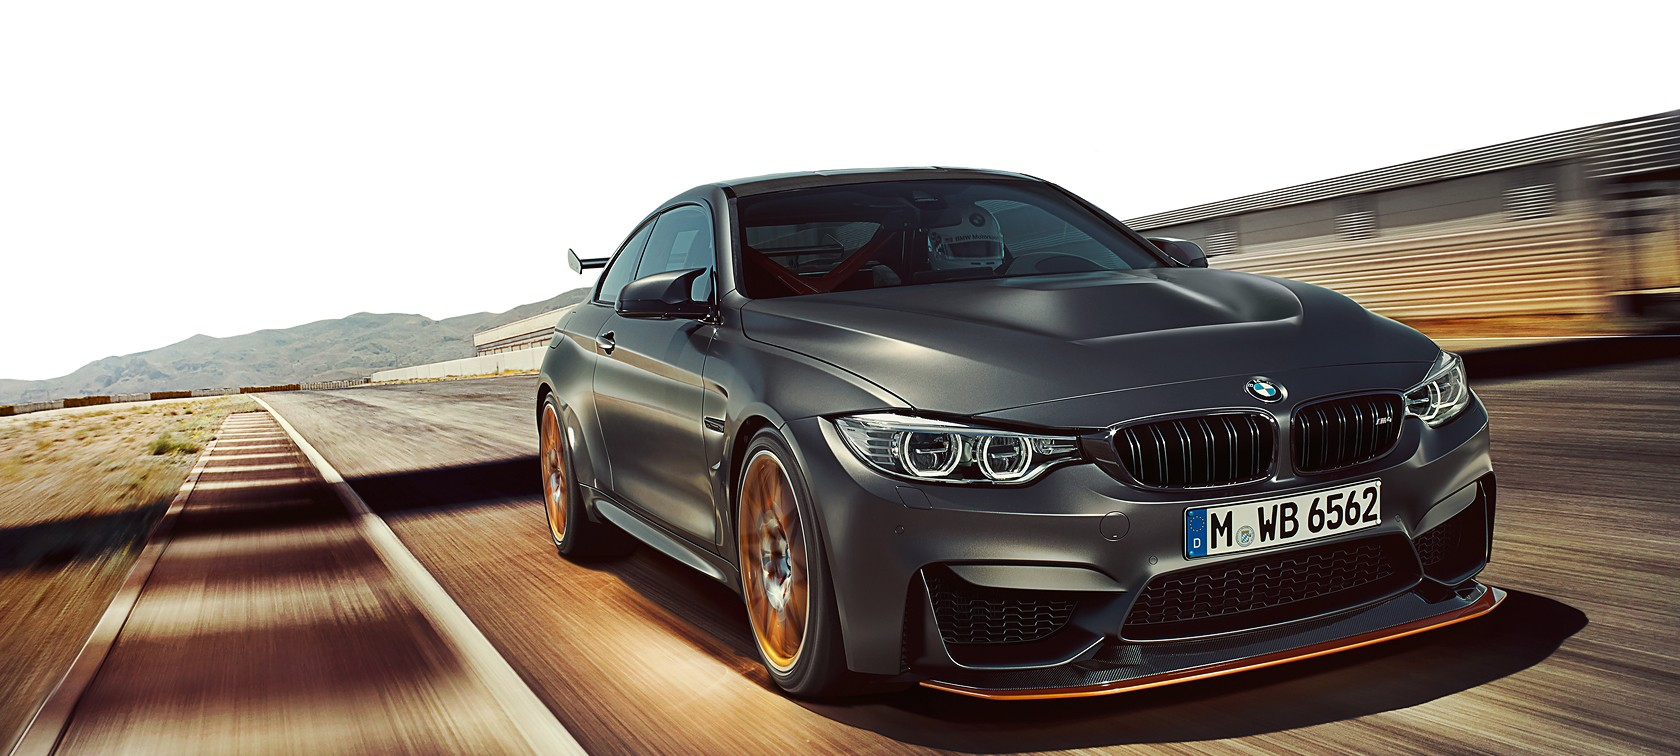 360 view of the bmw m4 gts